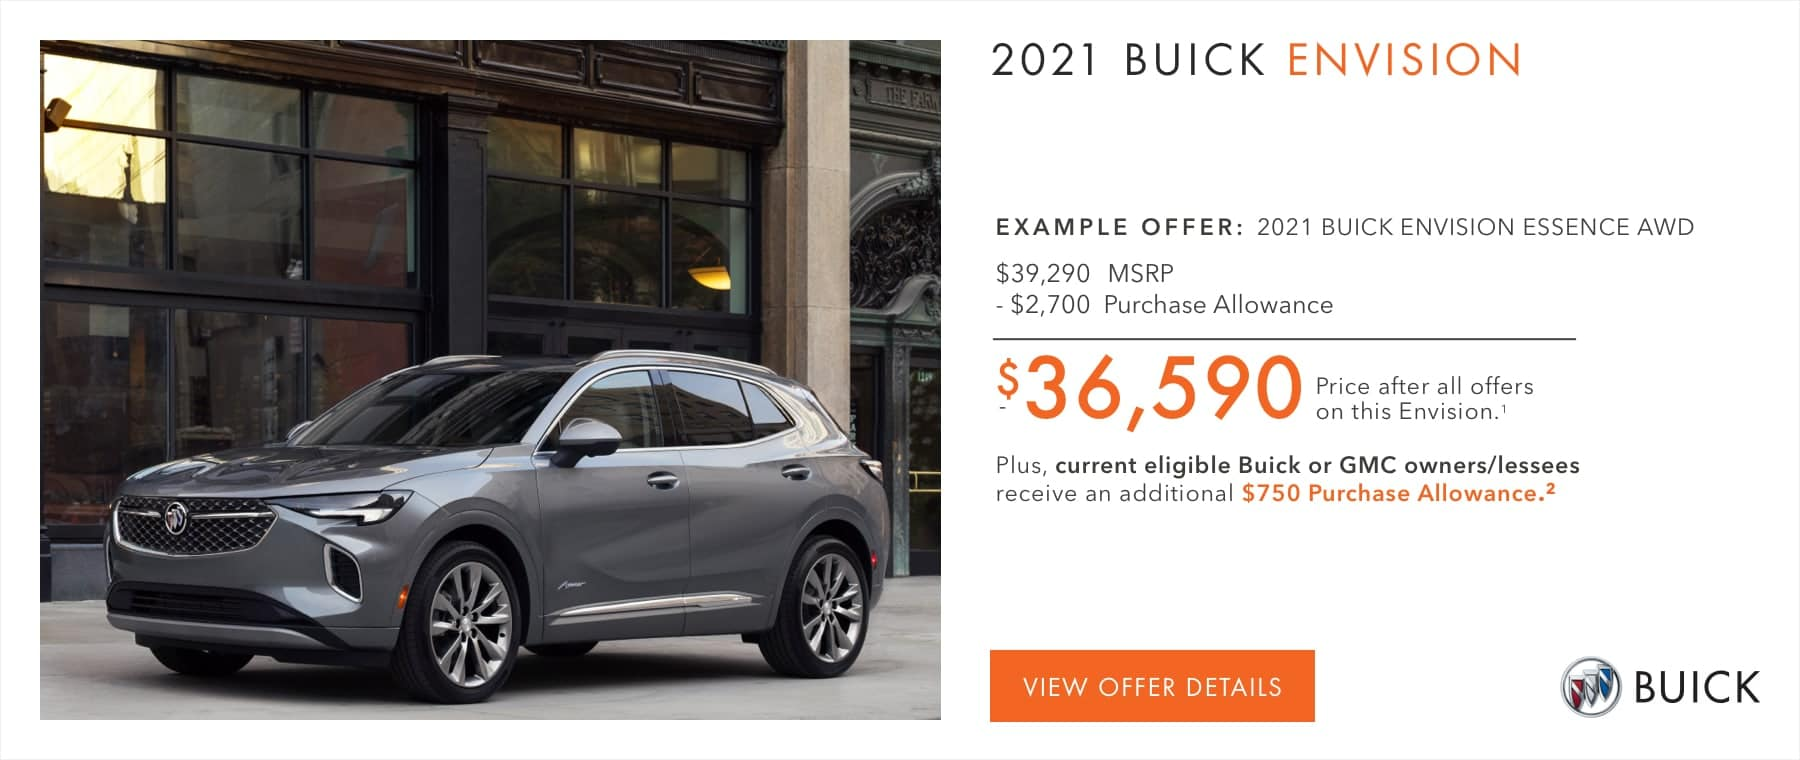 $36,590 Price after all offers on this Envision.1 Plus, current eligible Buick or GMC owners/lessees receive an additional $750 Purchase Allowance.2